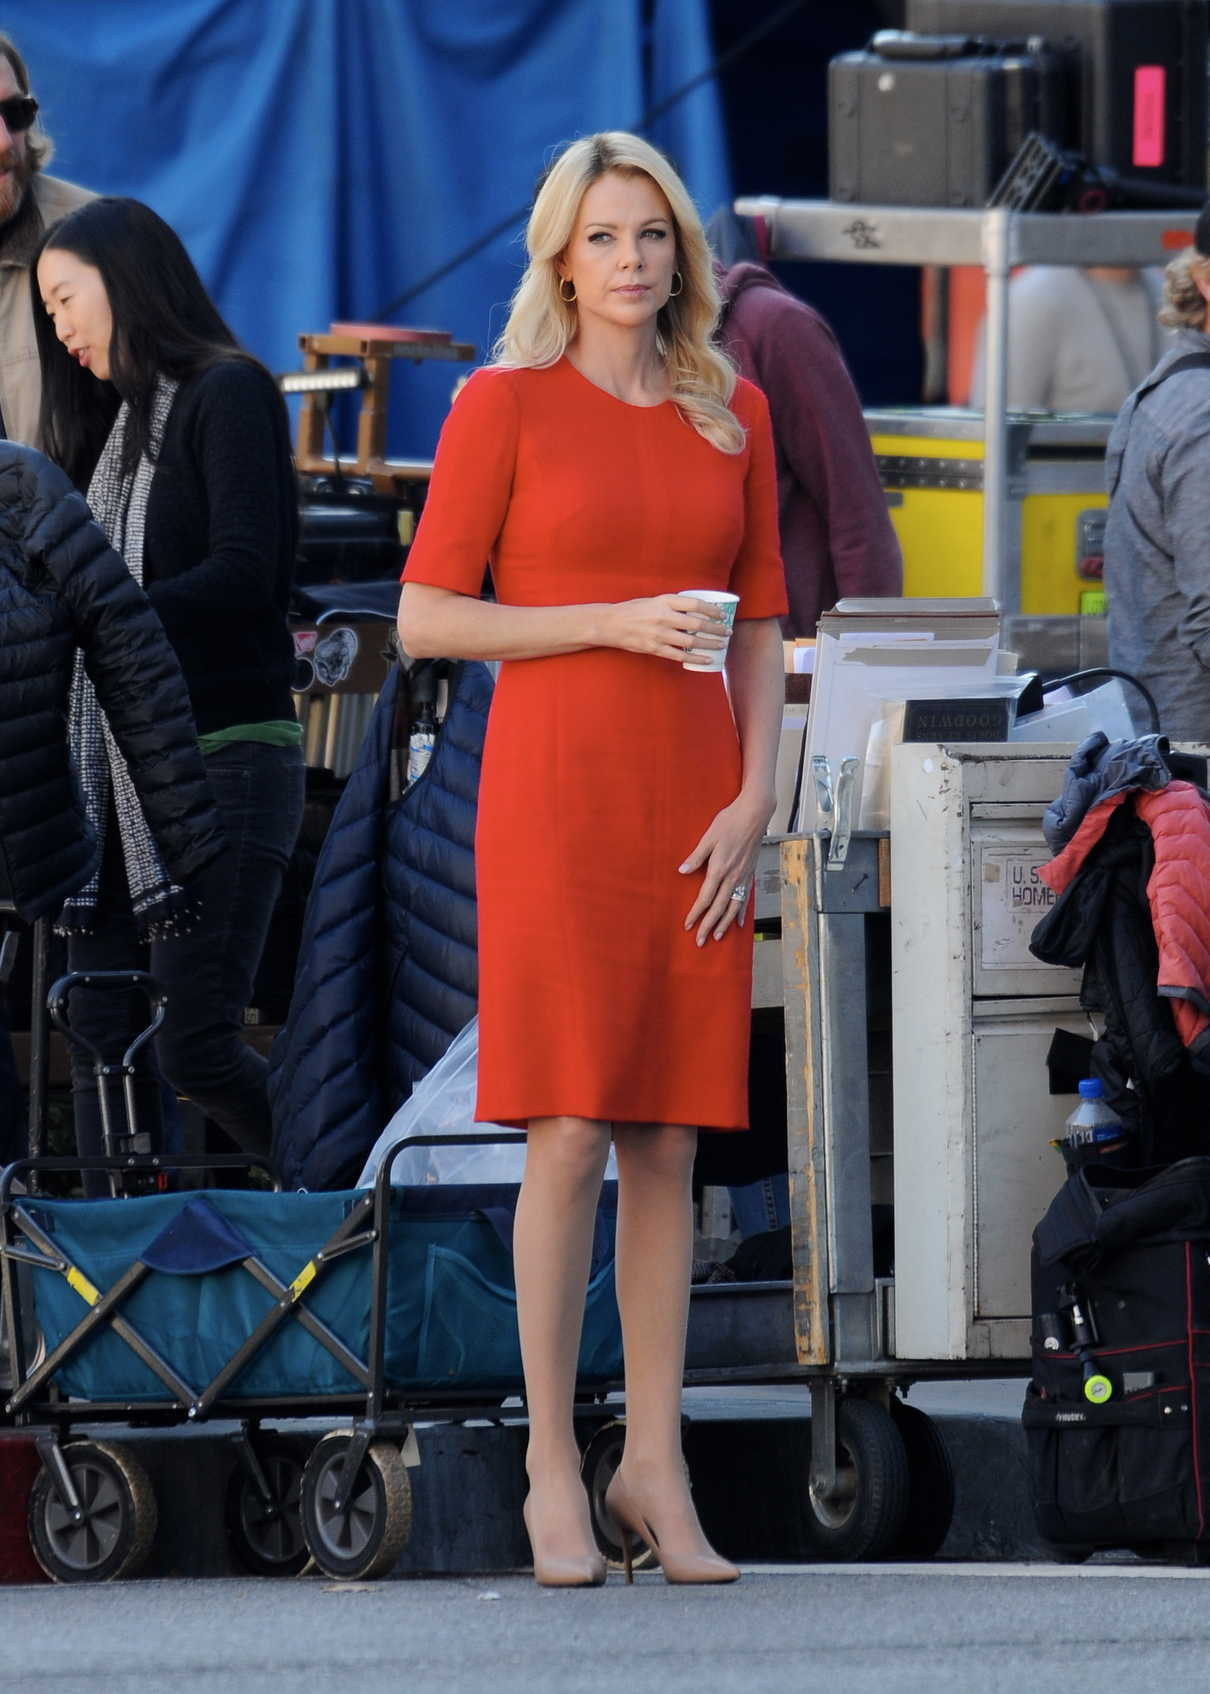 Charlize Theron in a Red Dress